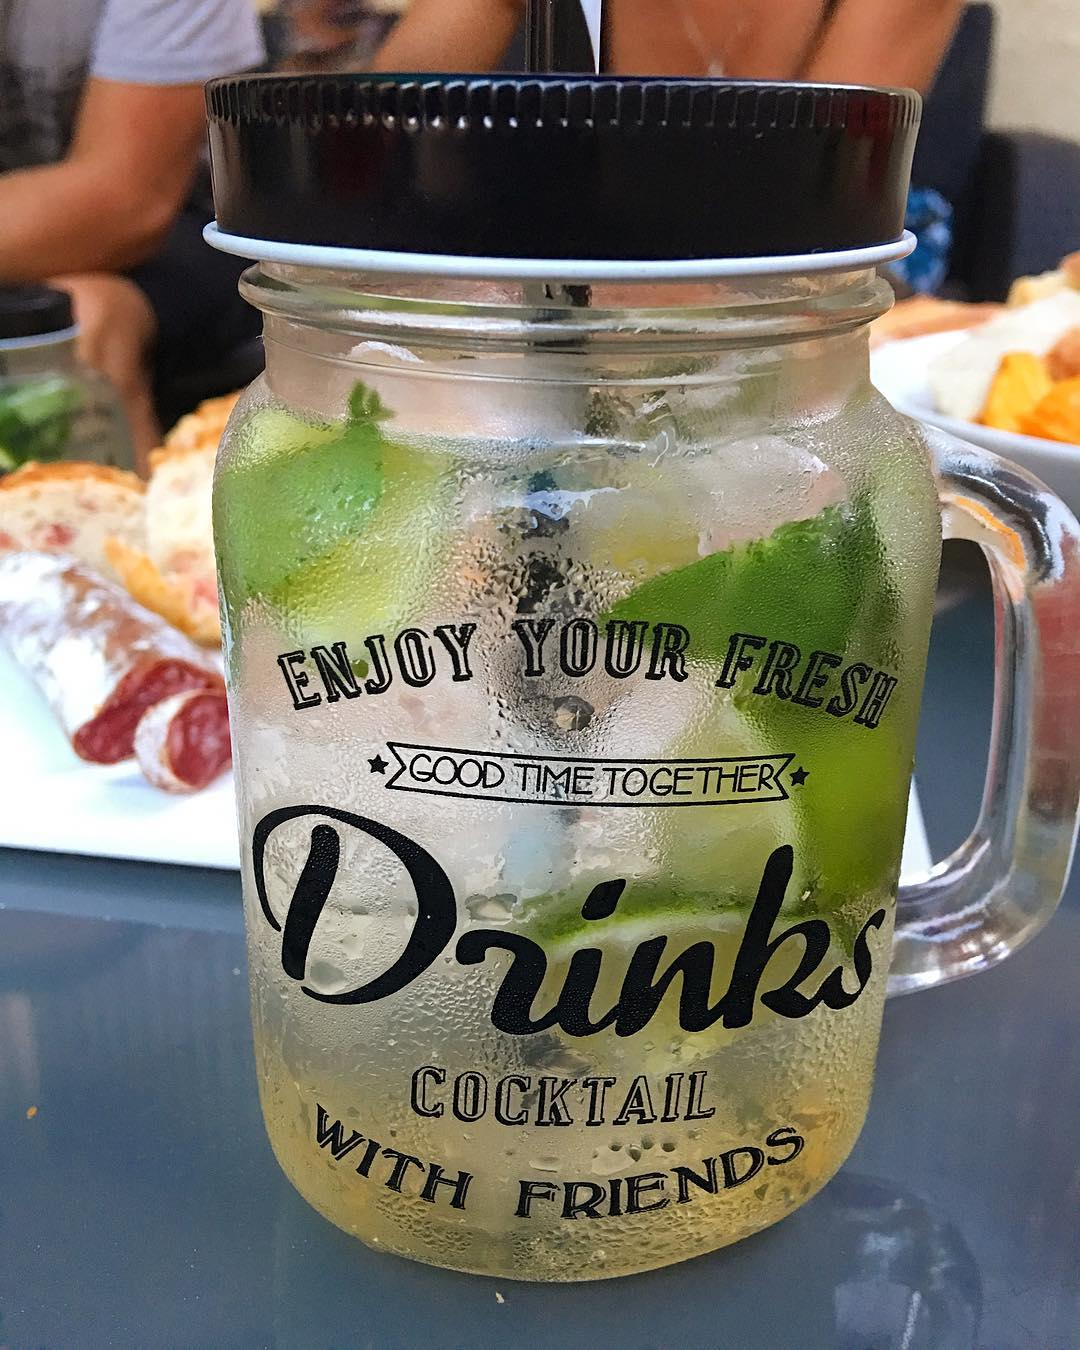 DRINKS COCKTAILS WITH FRIENDS ????? Fête du Mojito  _________________ #mojito #fetedumojito #fetedumojitomontpellier #beziers #pintademontpellier #montpellier #friends #cocktails #mixologie